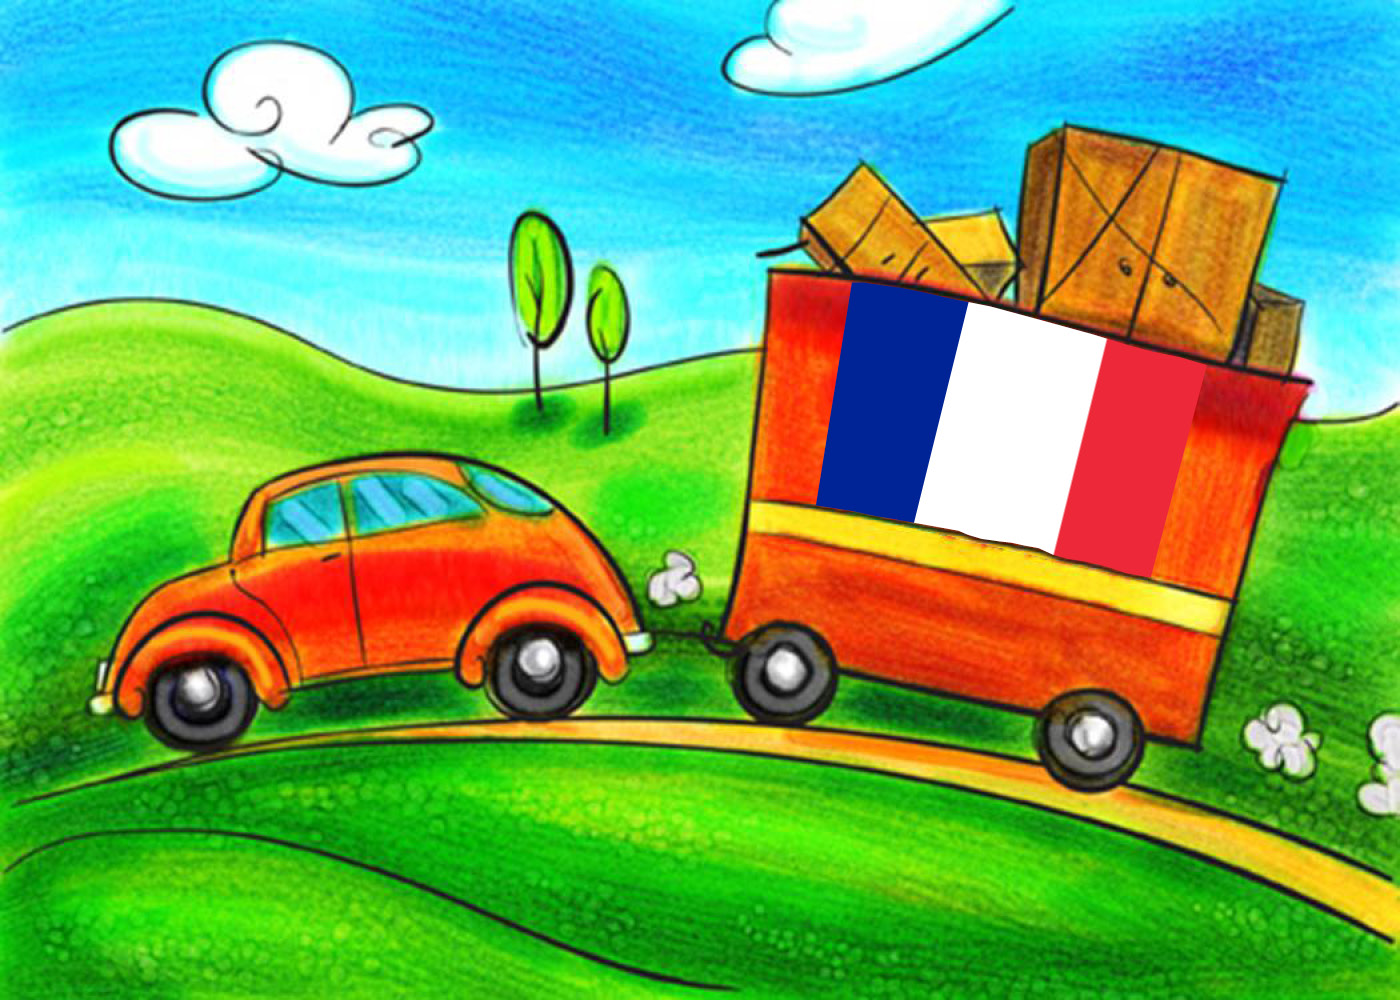 mortgages an moving to France